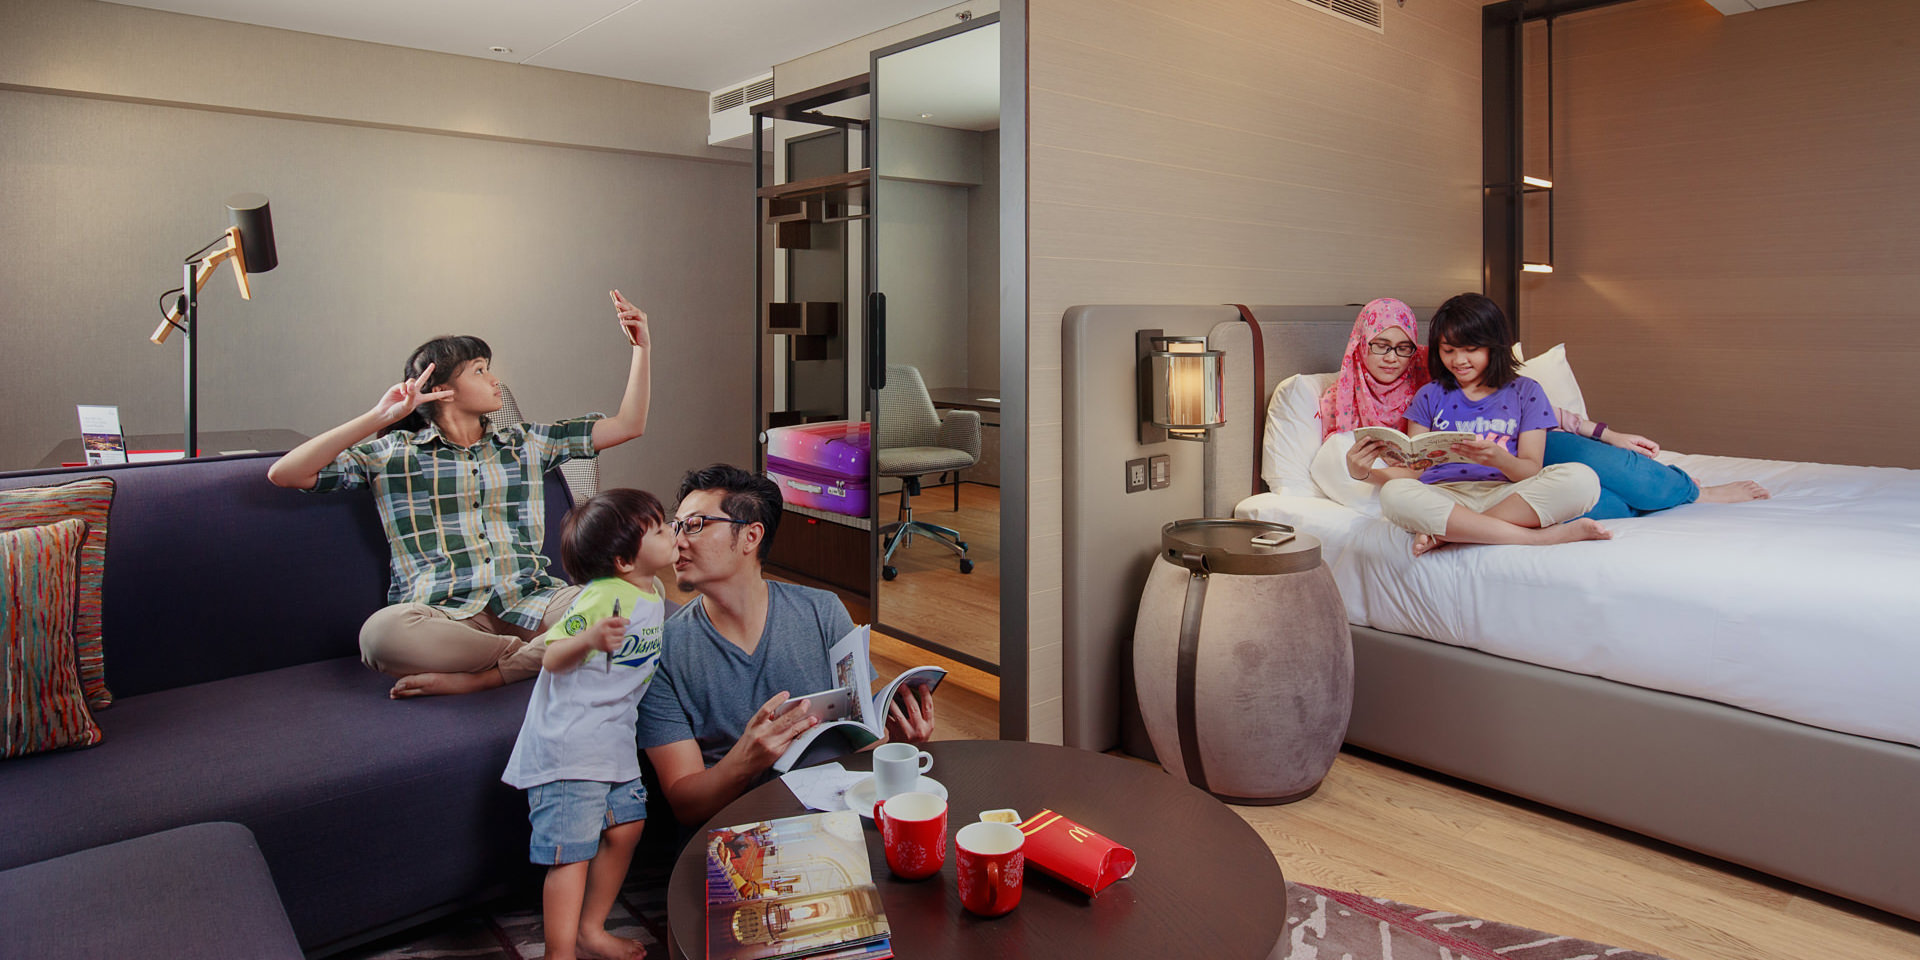 Family photo by Singapore based award-winning commercial photographer. Specializes in a variety of commercial work ranging from portrait, food and interior photography.